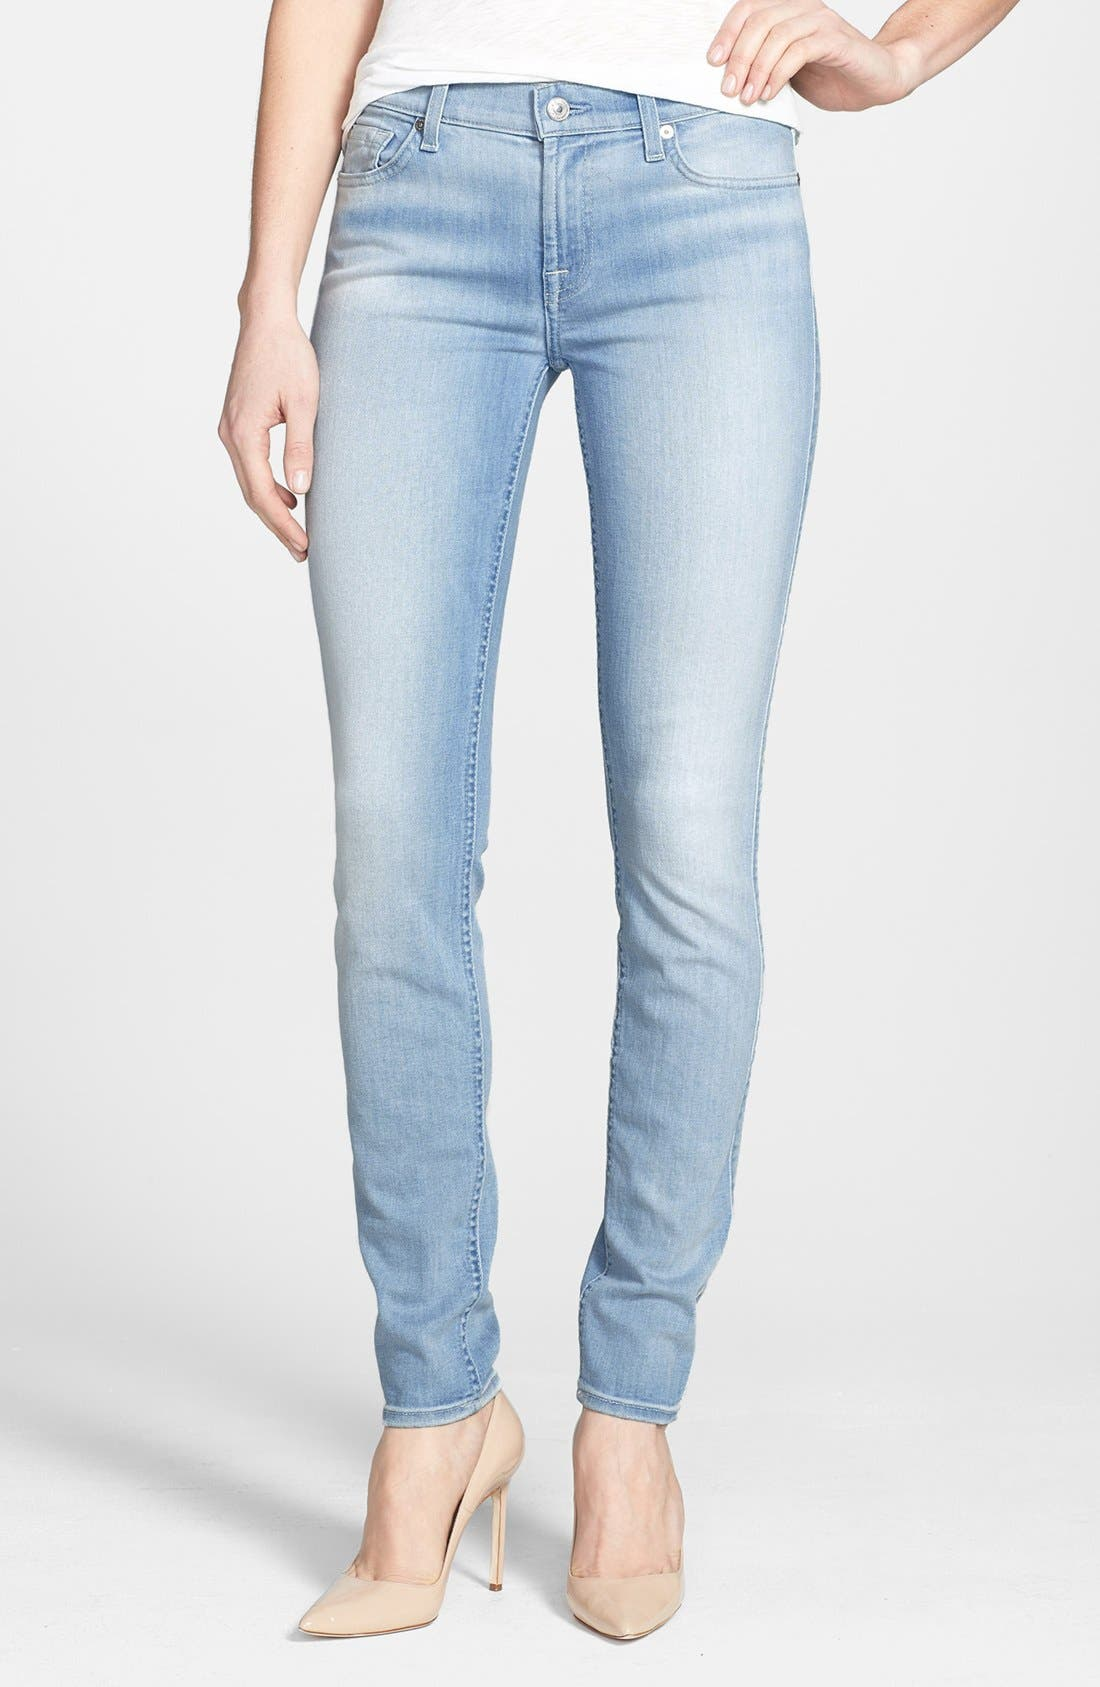 Alternate Image 1 Selected - 7 For All Mankind® 'The Skinny' Mid Rise Jeans (Sky Blue)